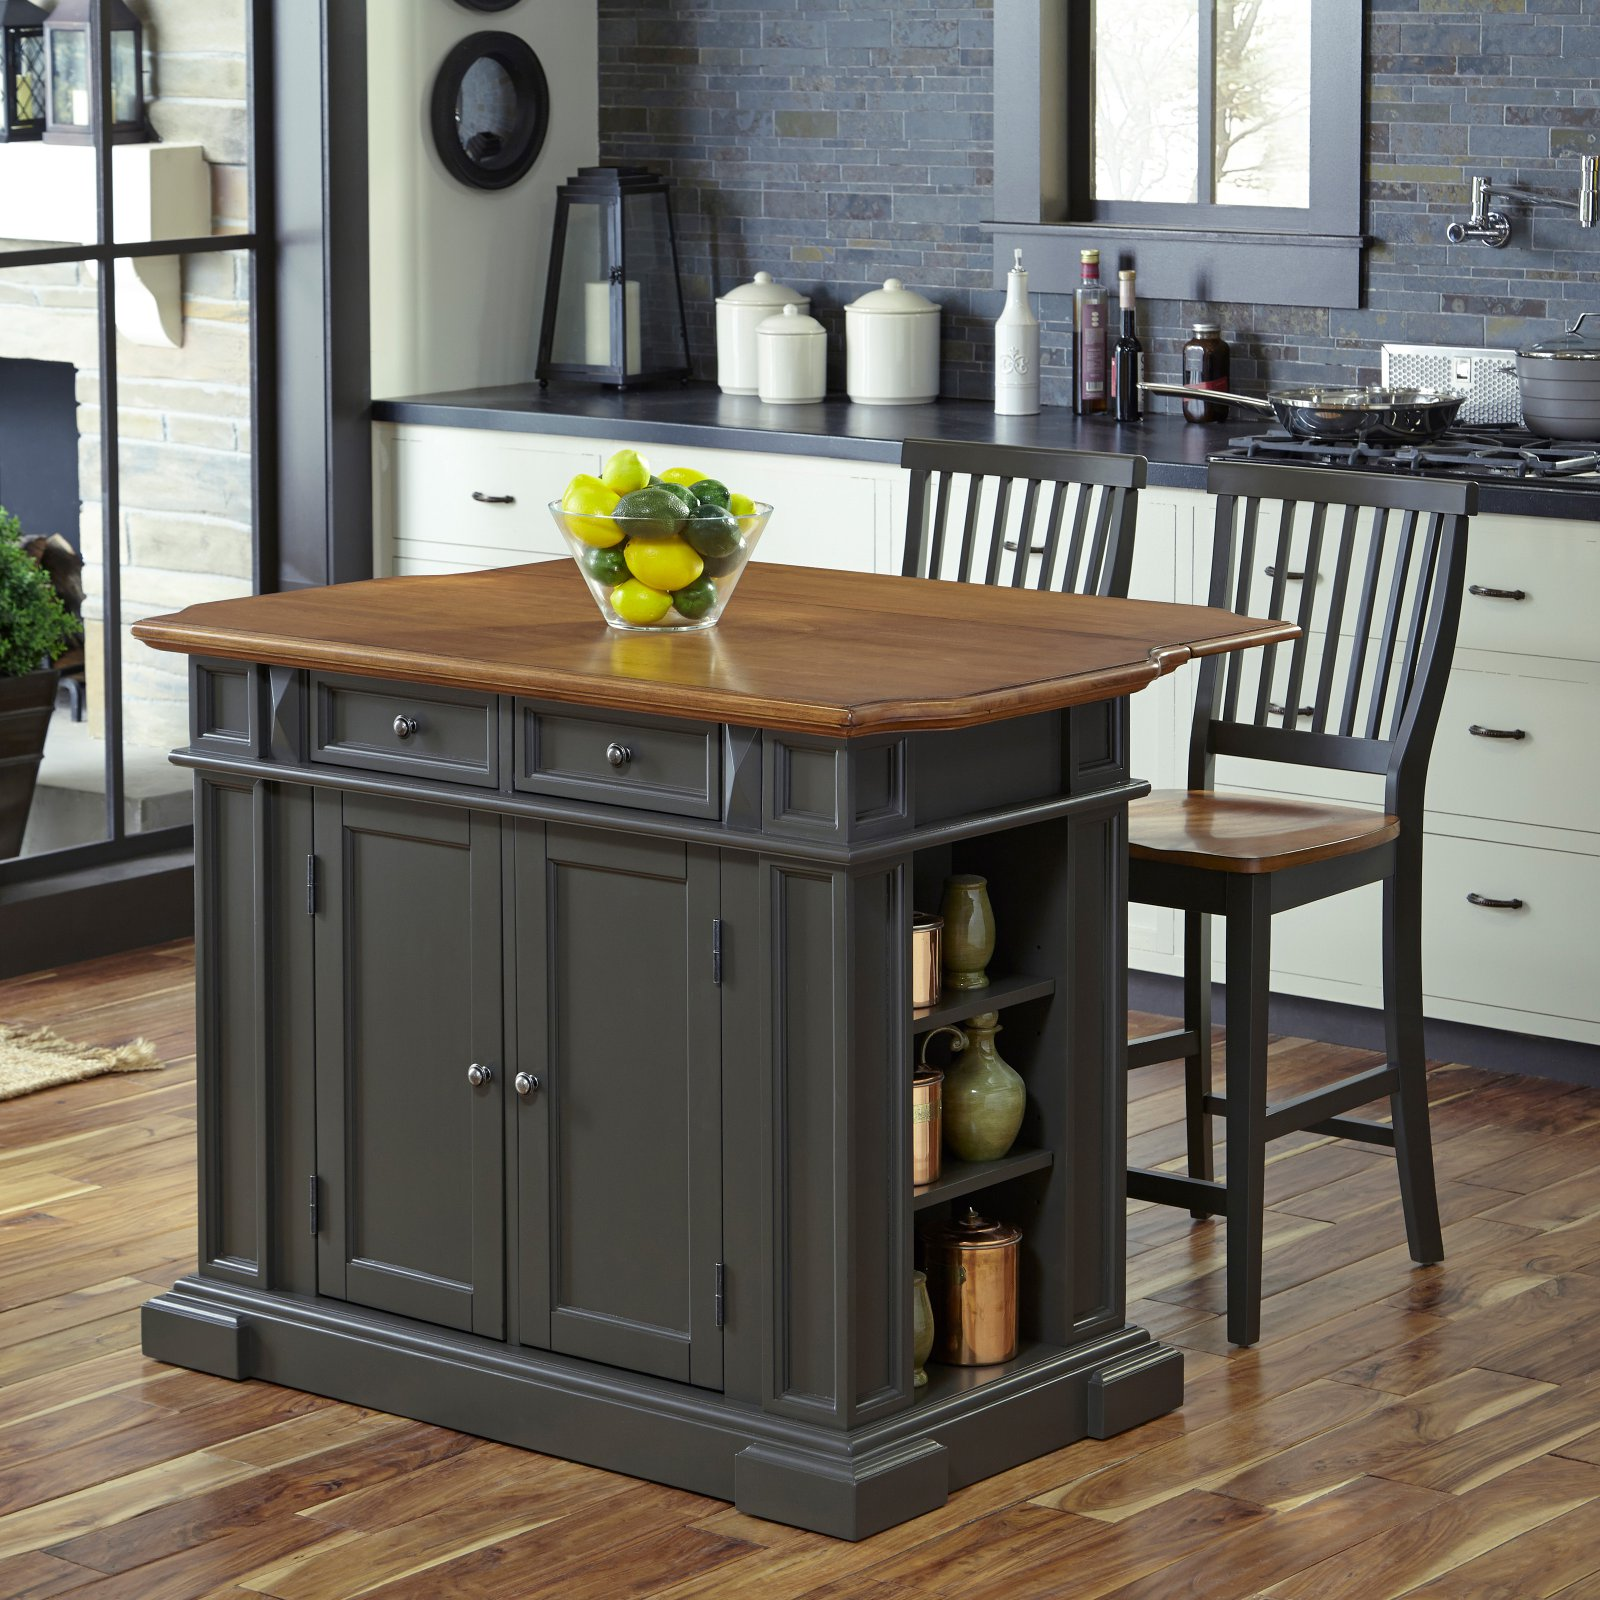 Stools Kitchen Islands Americana Kitchen Island With 2 Stools